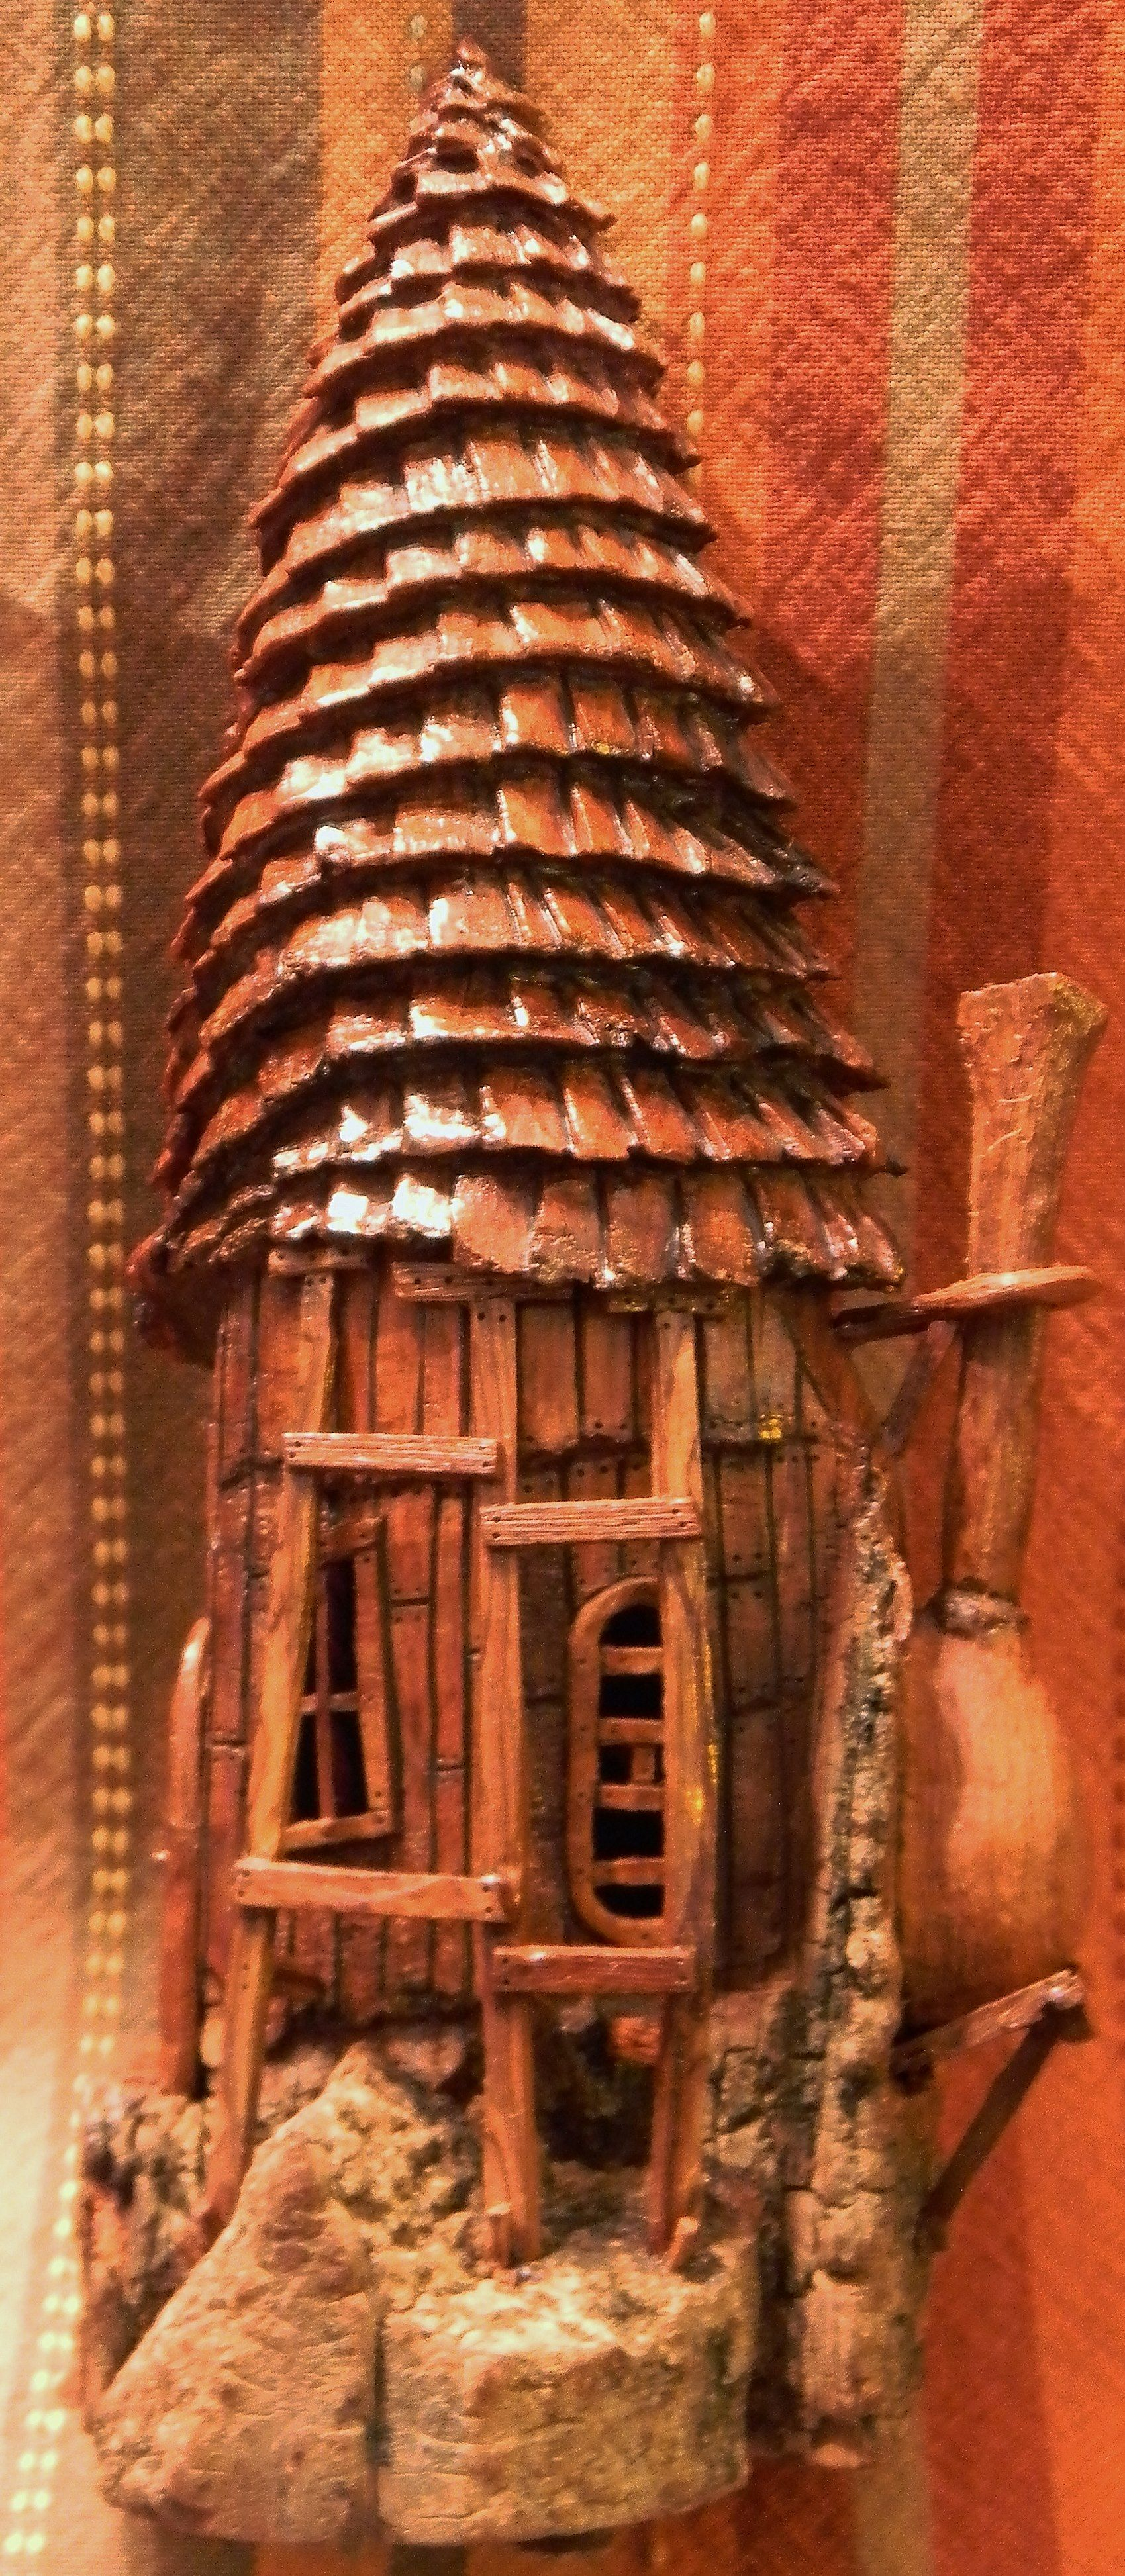 Right spiral roof house cottonwood bark carving by n